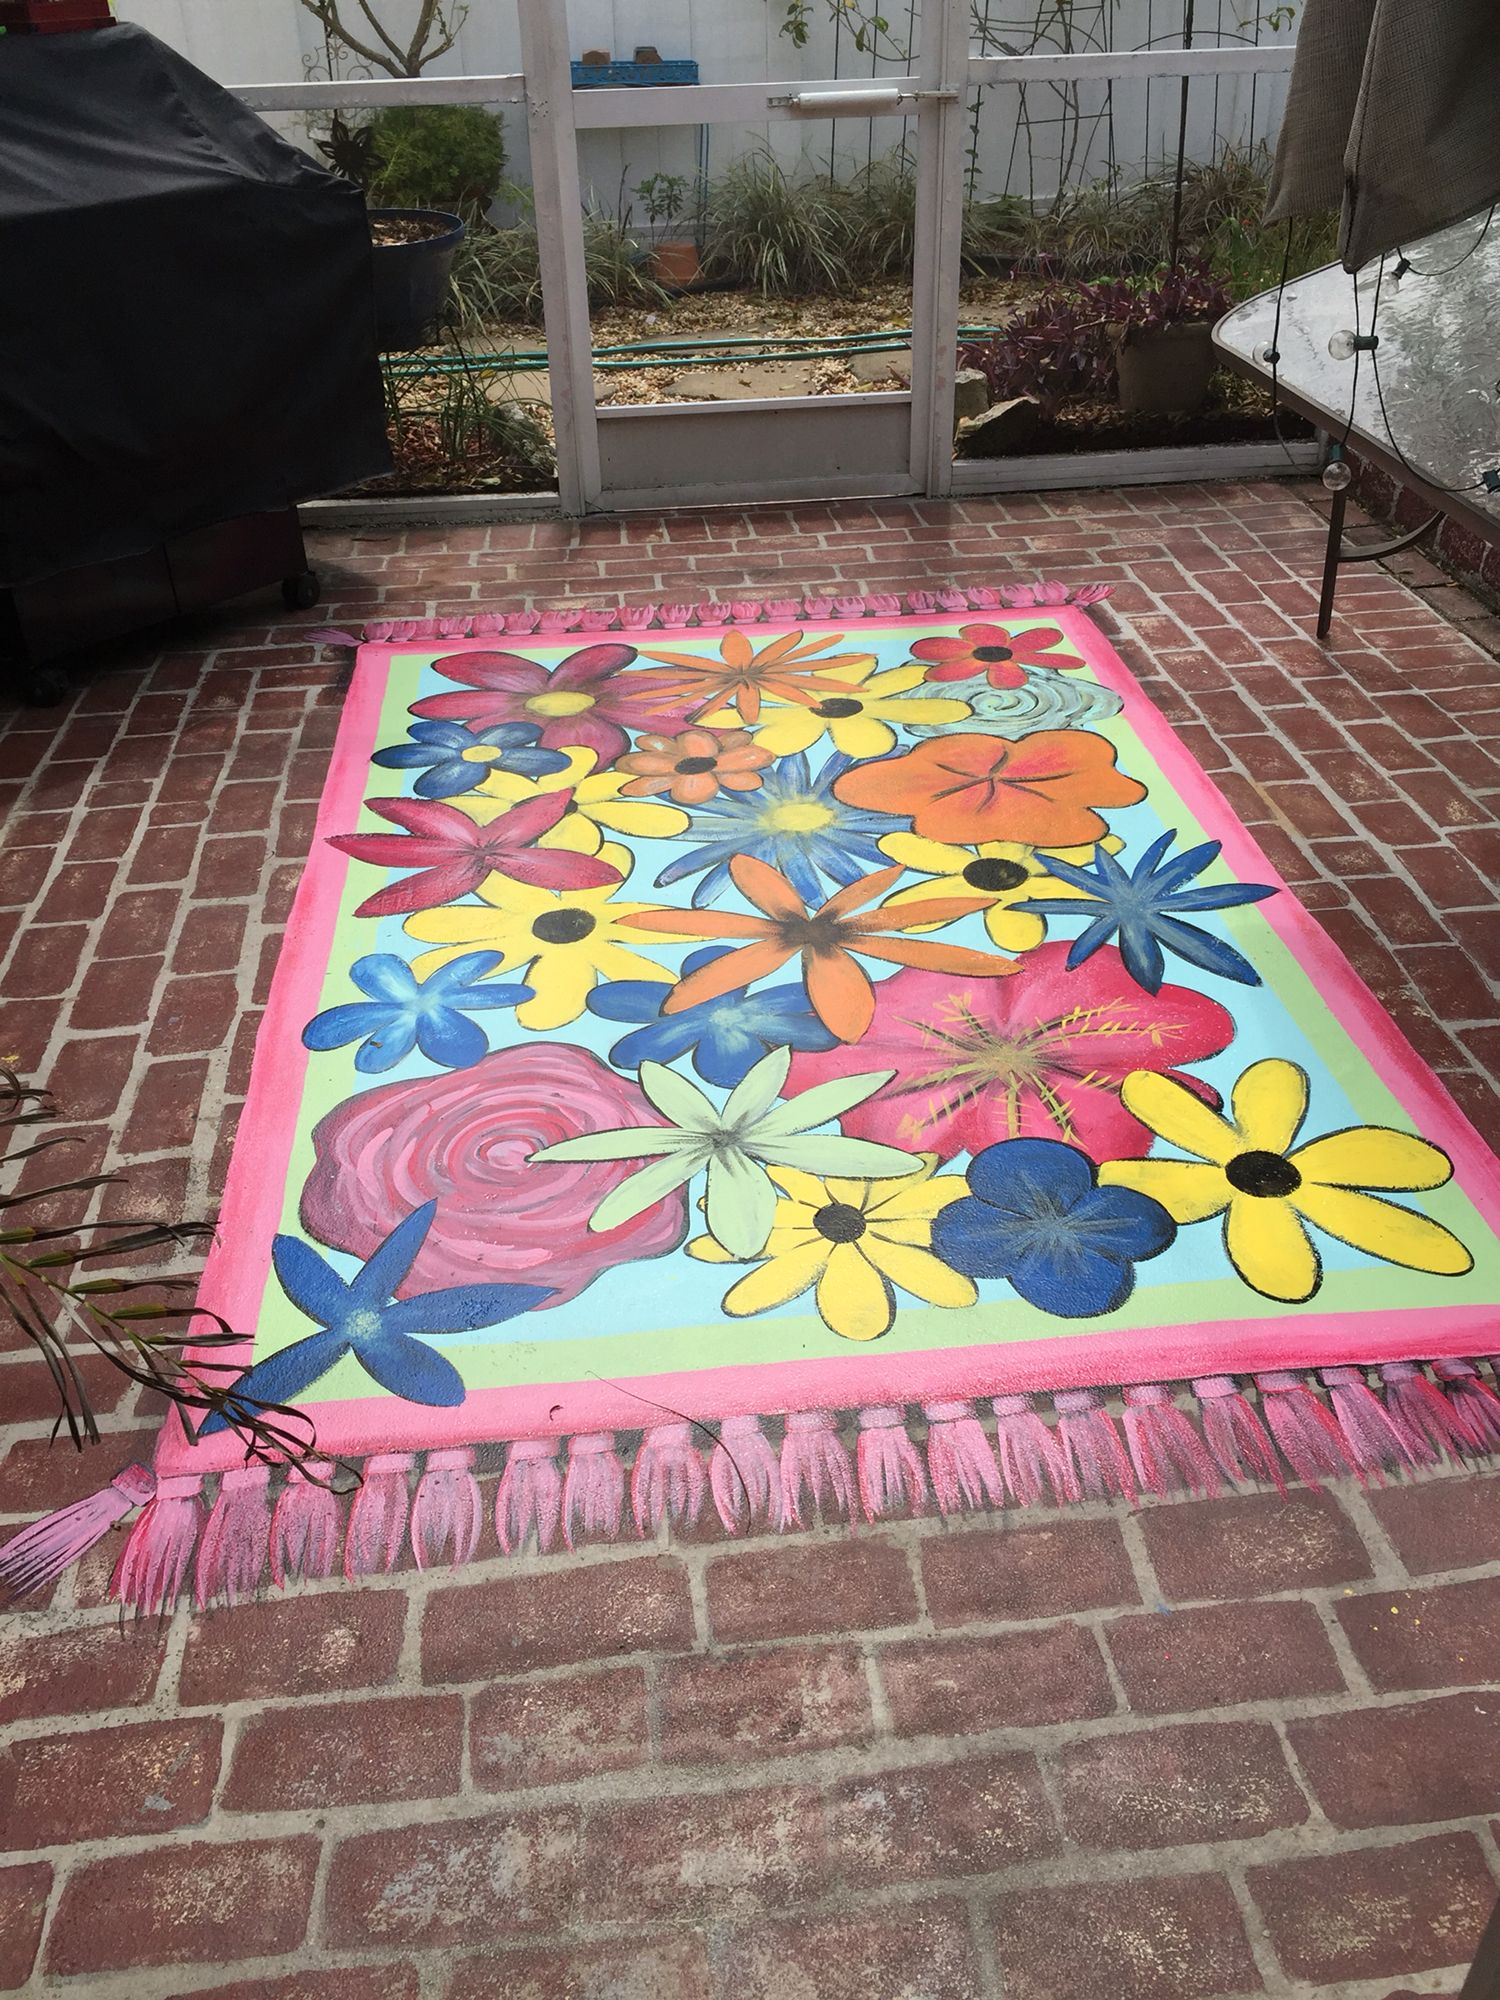 Painted rug on concrete patio decor ideas pinterest for Painted concrete floor ideas